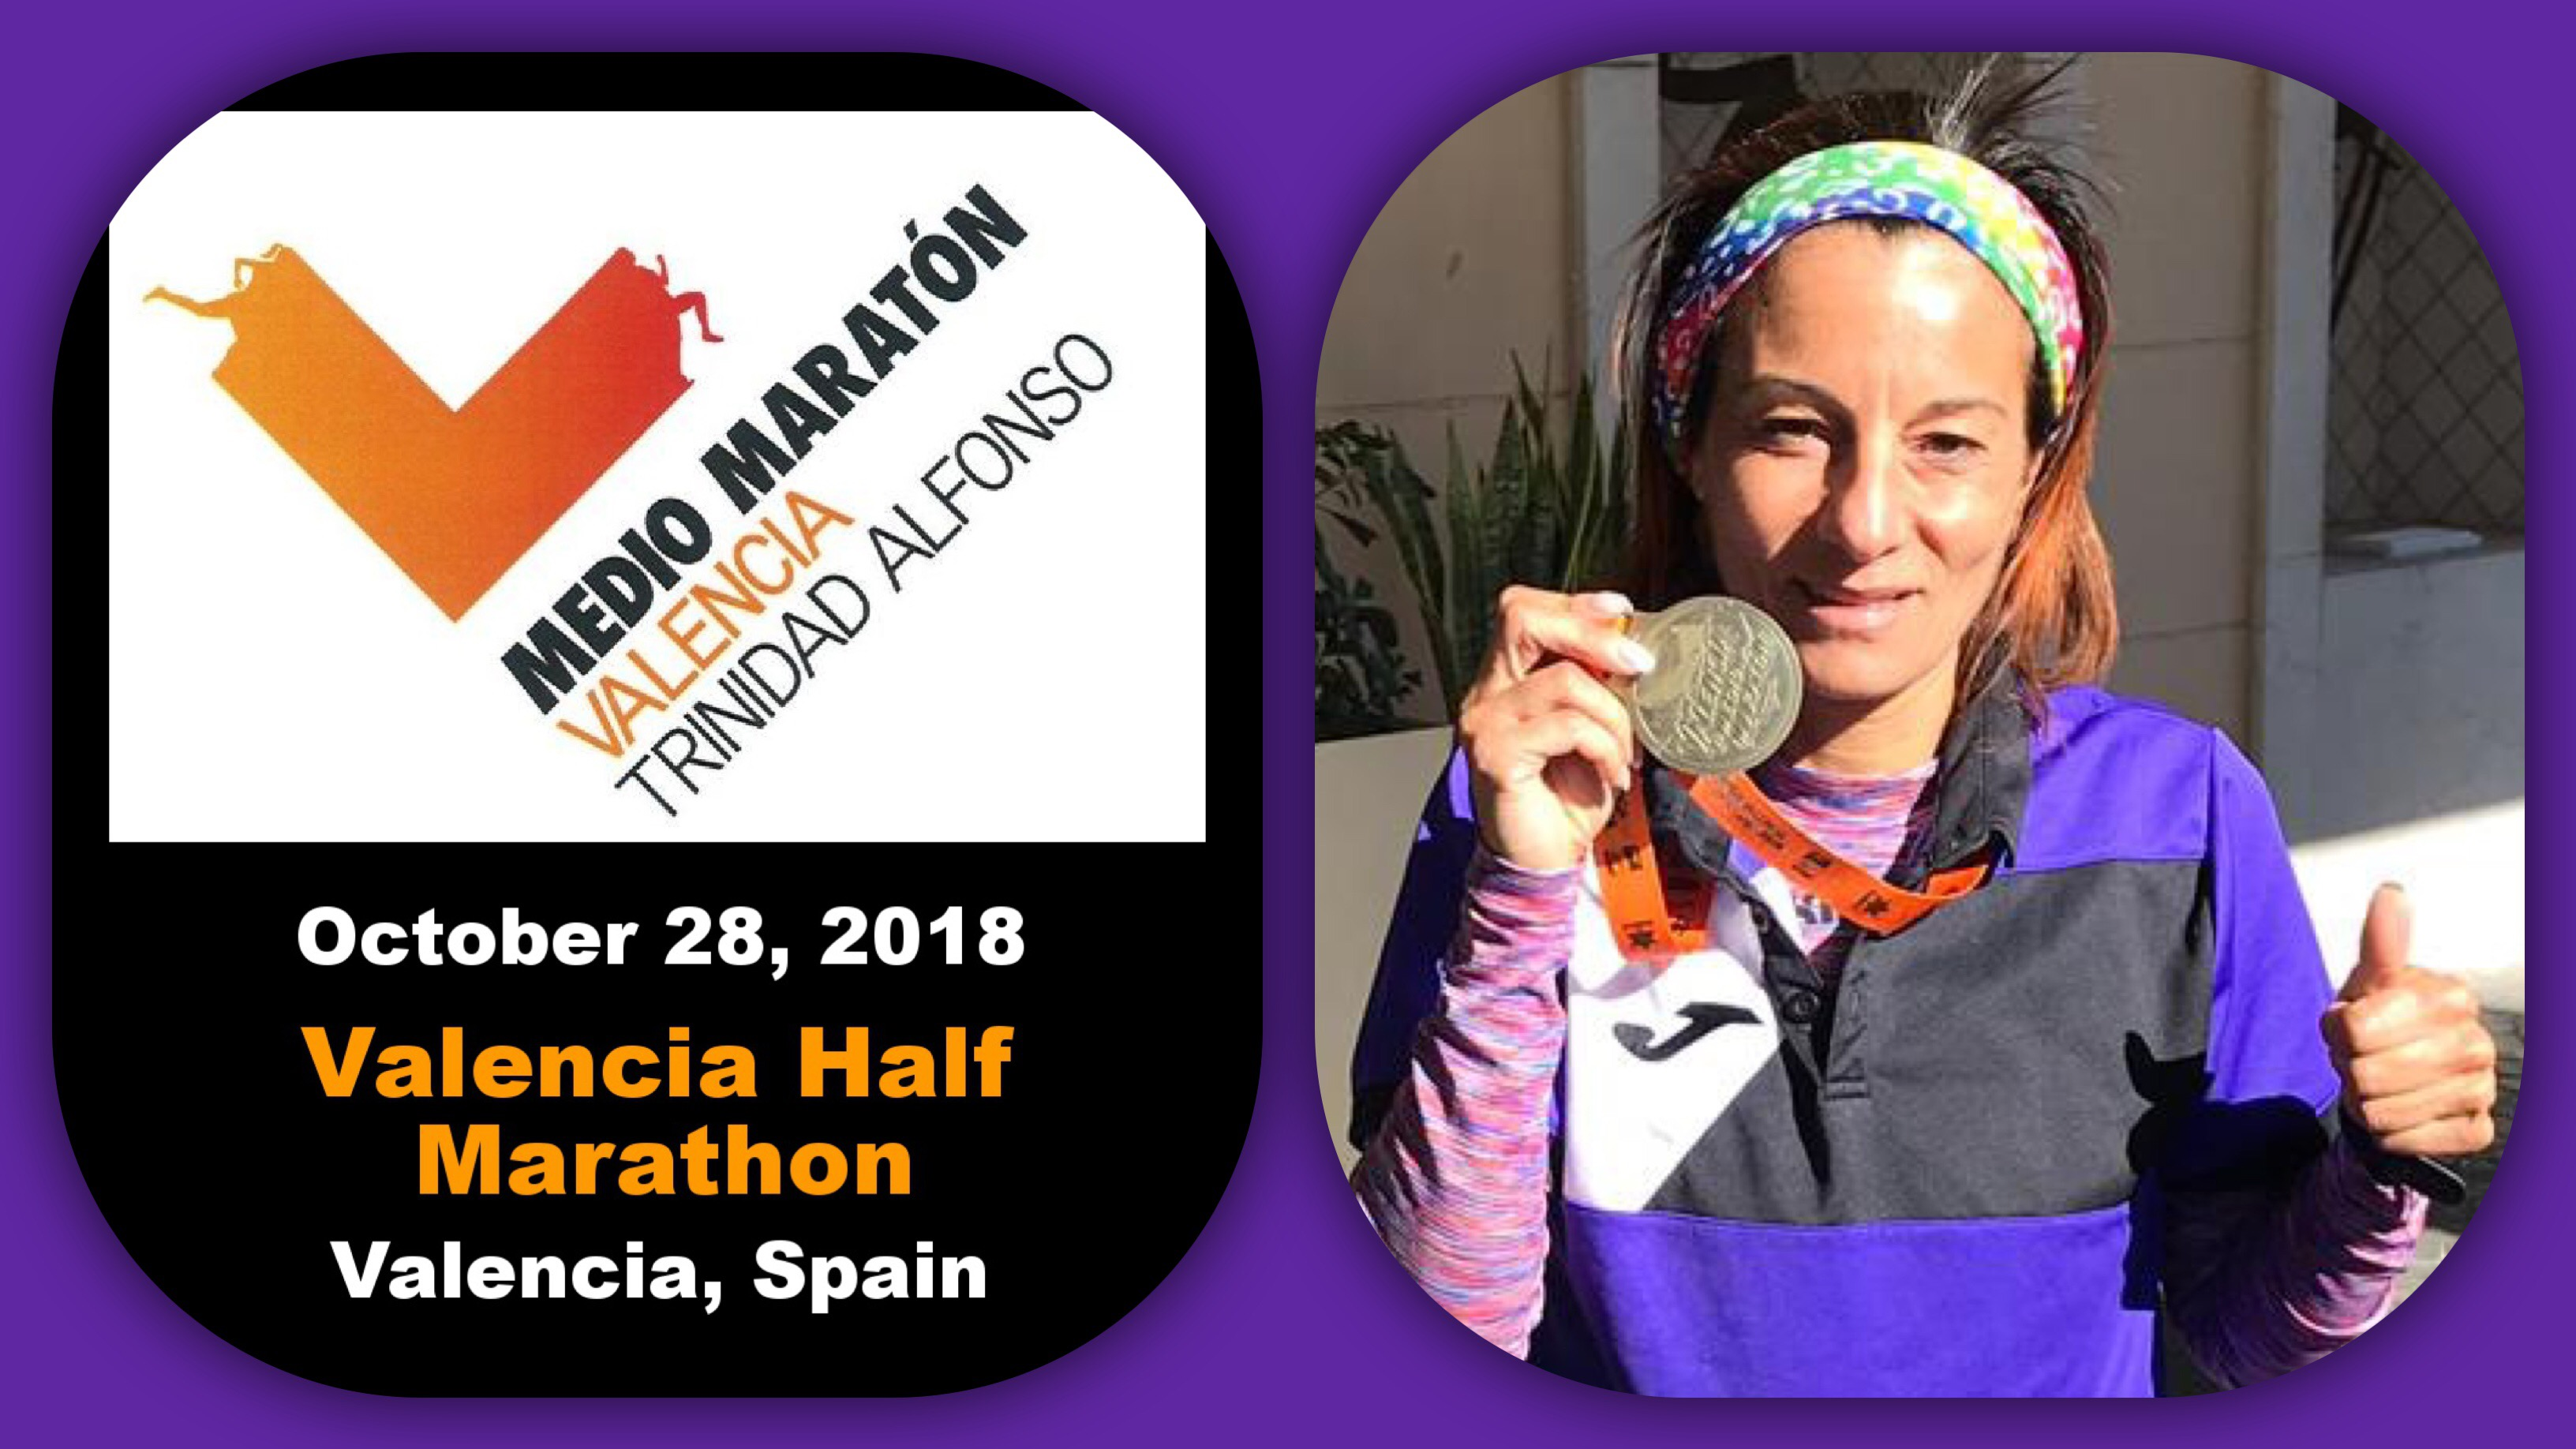 https://www.olibanumoverrunners.it/immagini_news/28-10-2018/1540722520-265-.JPG